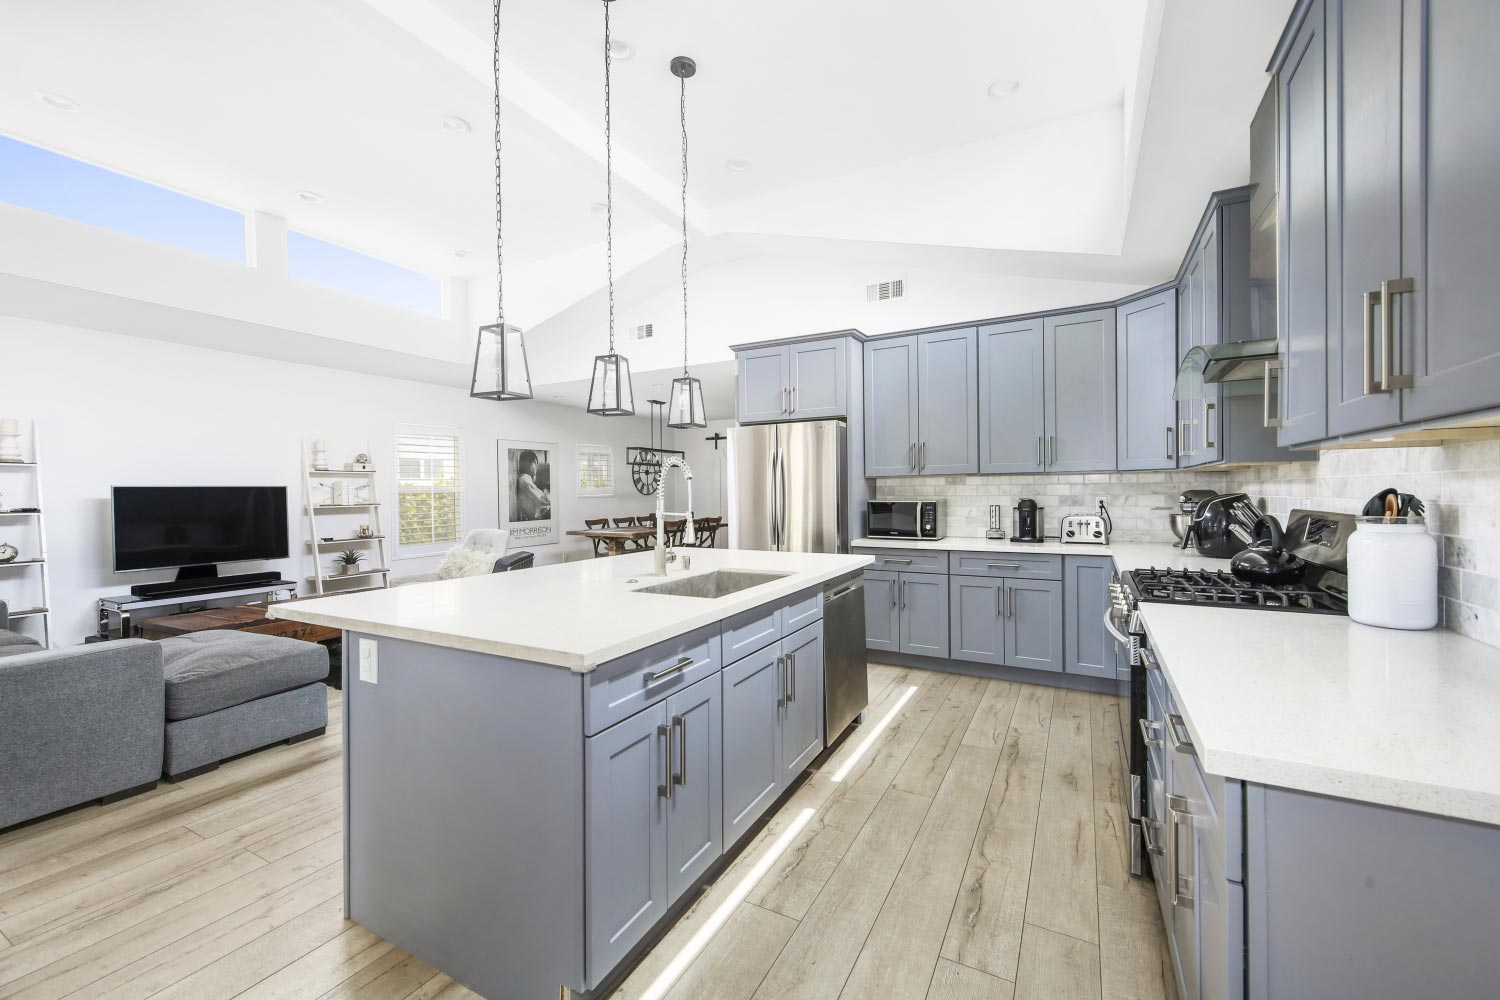 Remodeled, Noho, Home, Modern, North Hollywood